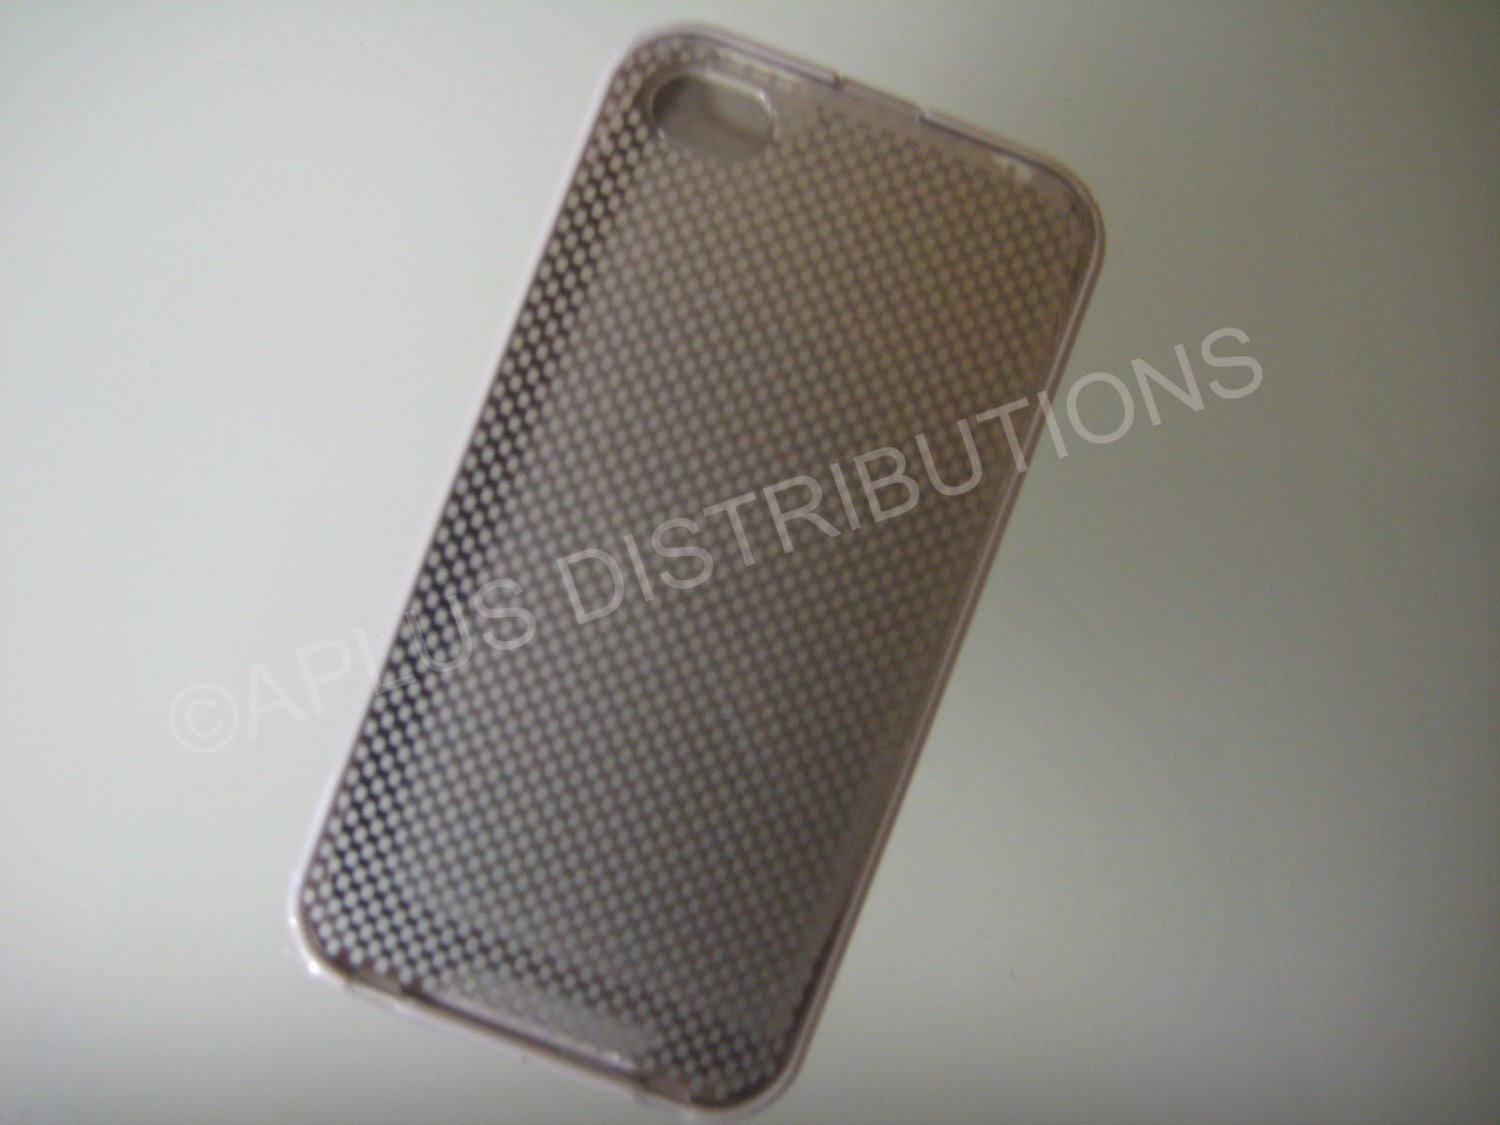 New White Transparent Checkered Pattern Hard Protective Cover For iPhone 4 - (0146)